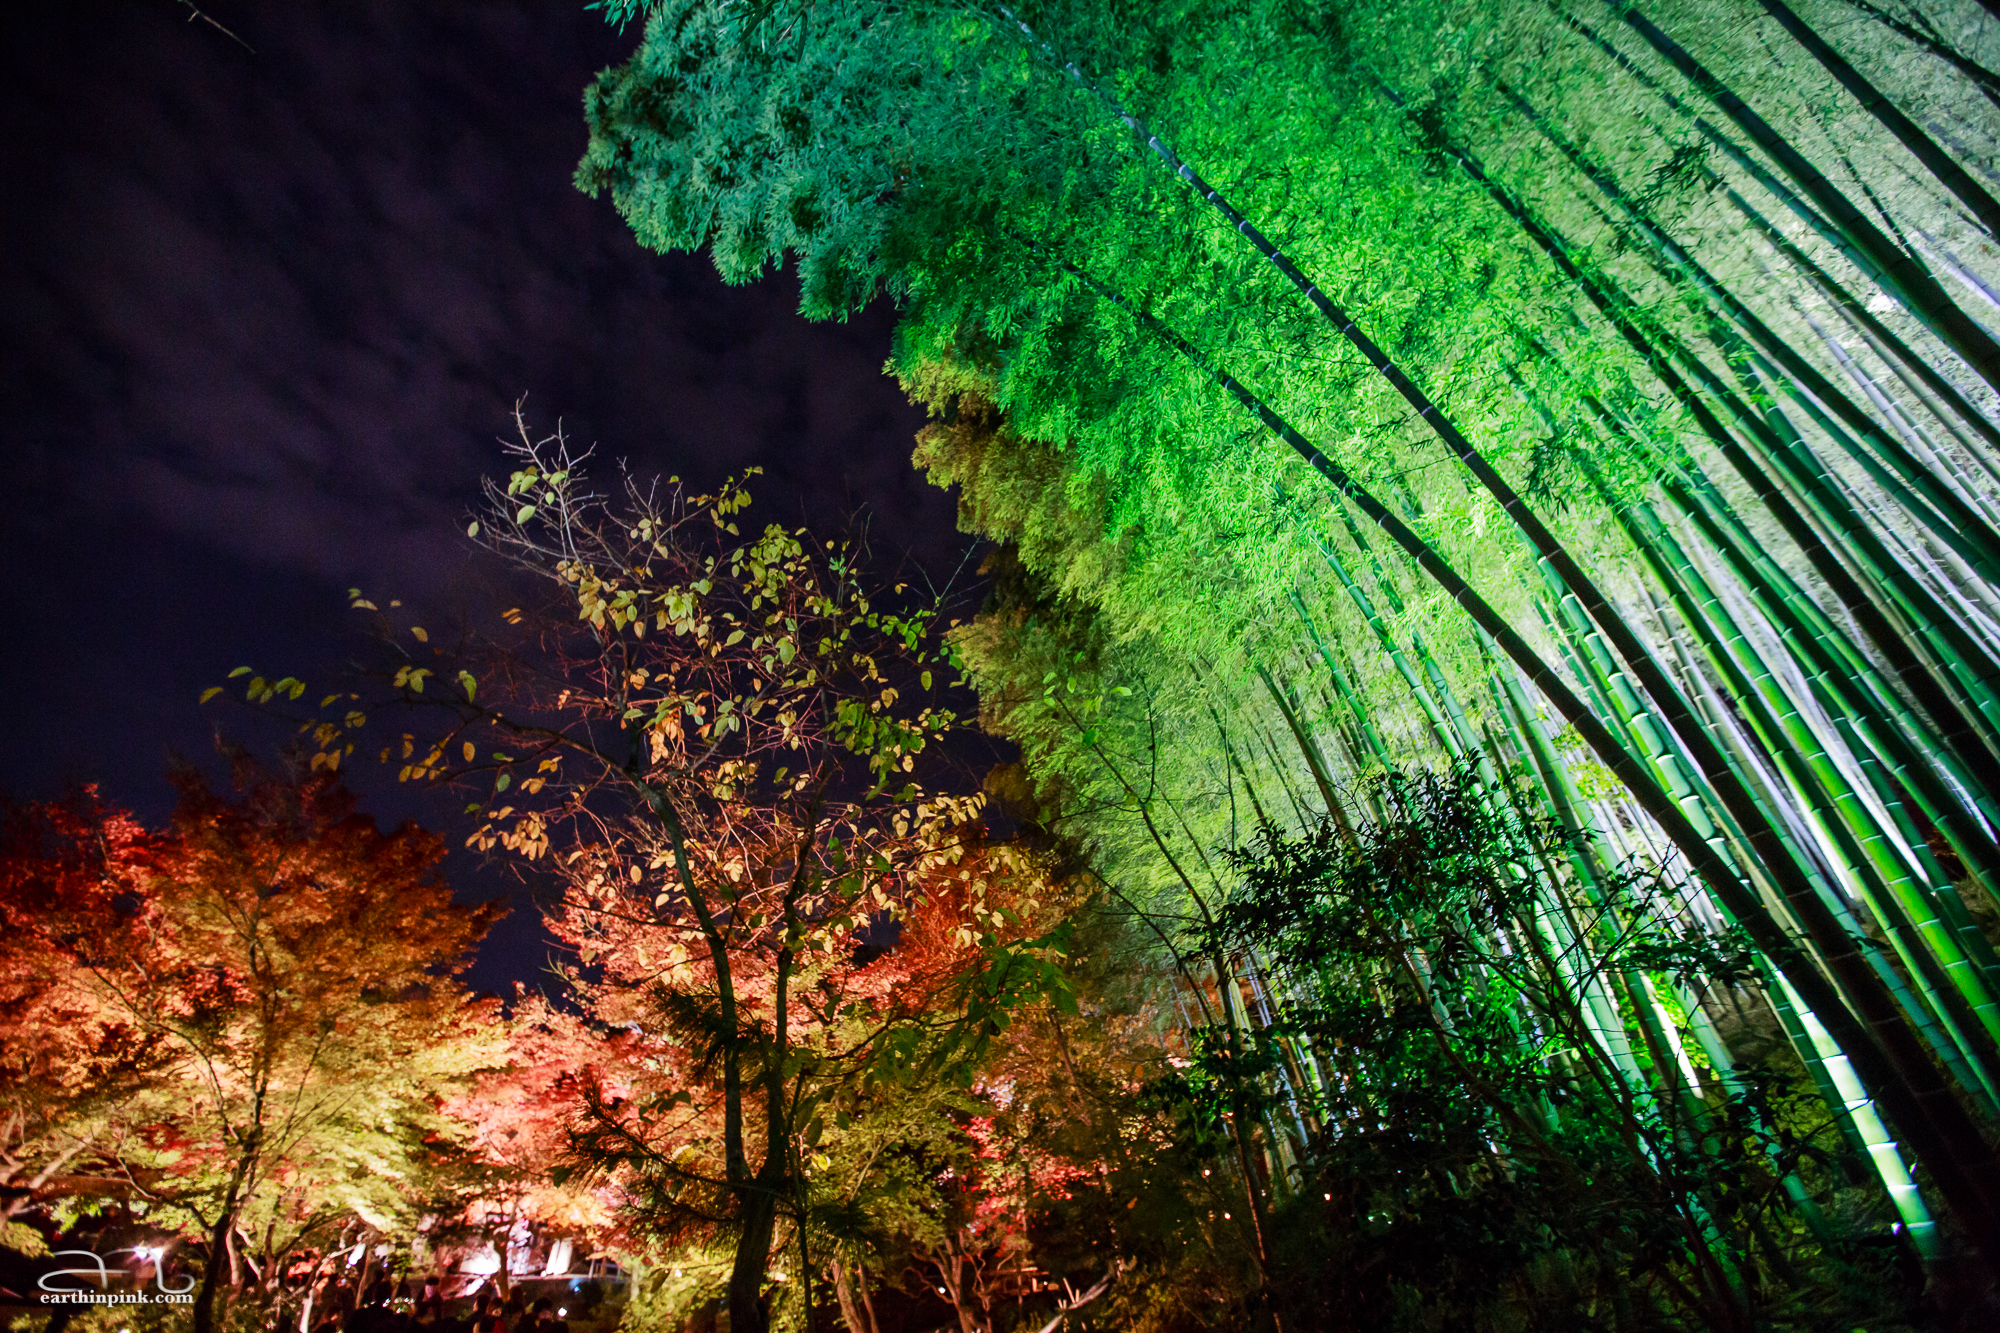 Night illumination at the Kodaiji temple in Kyoto.